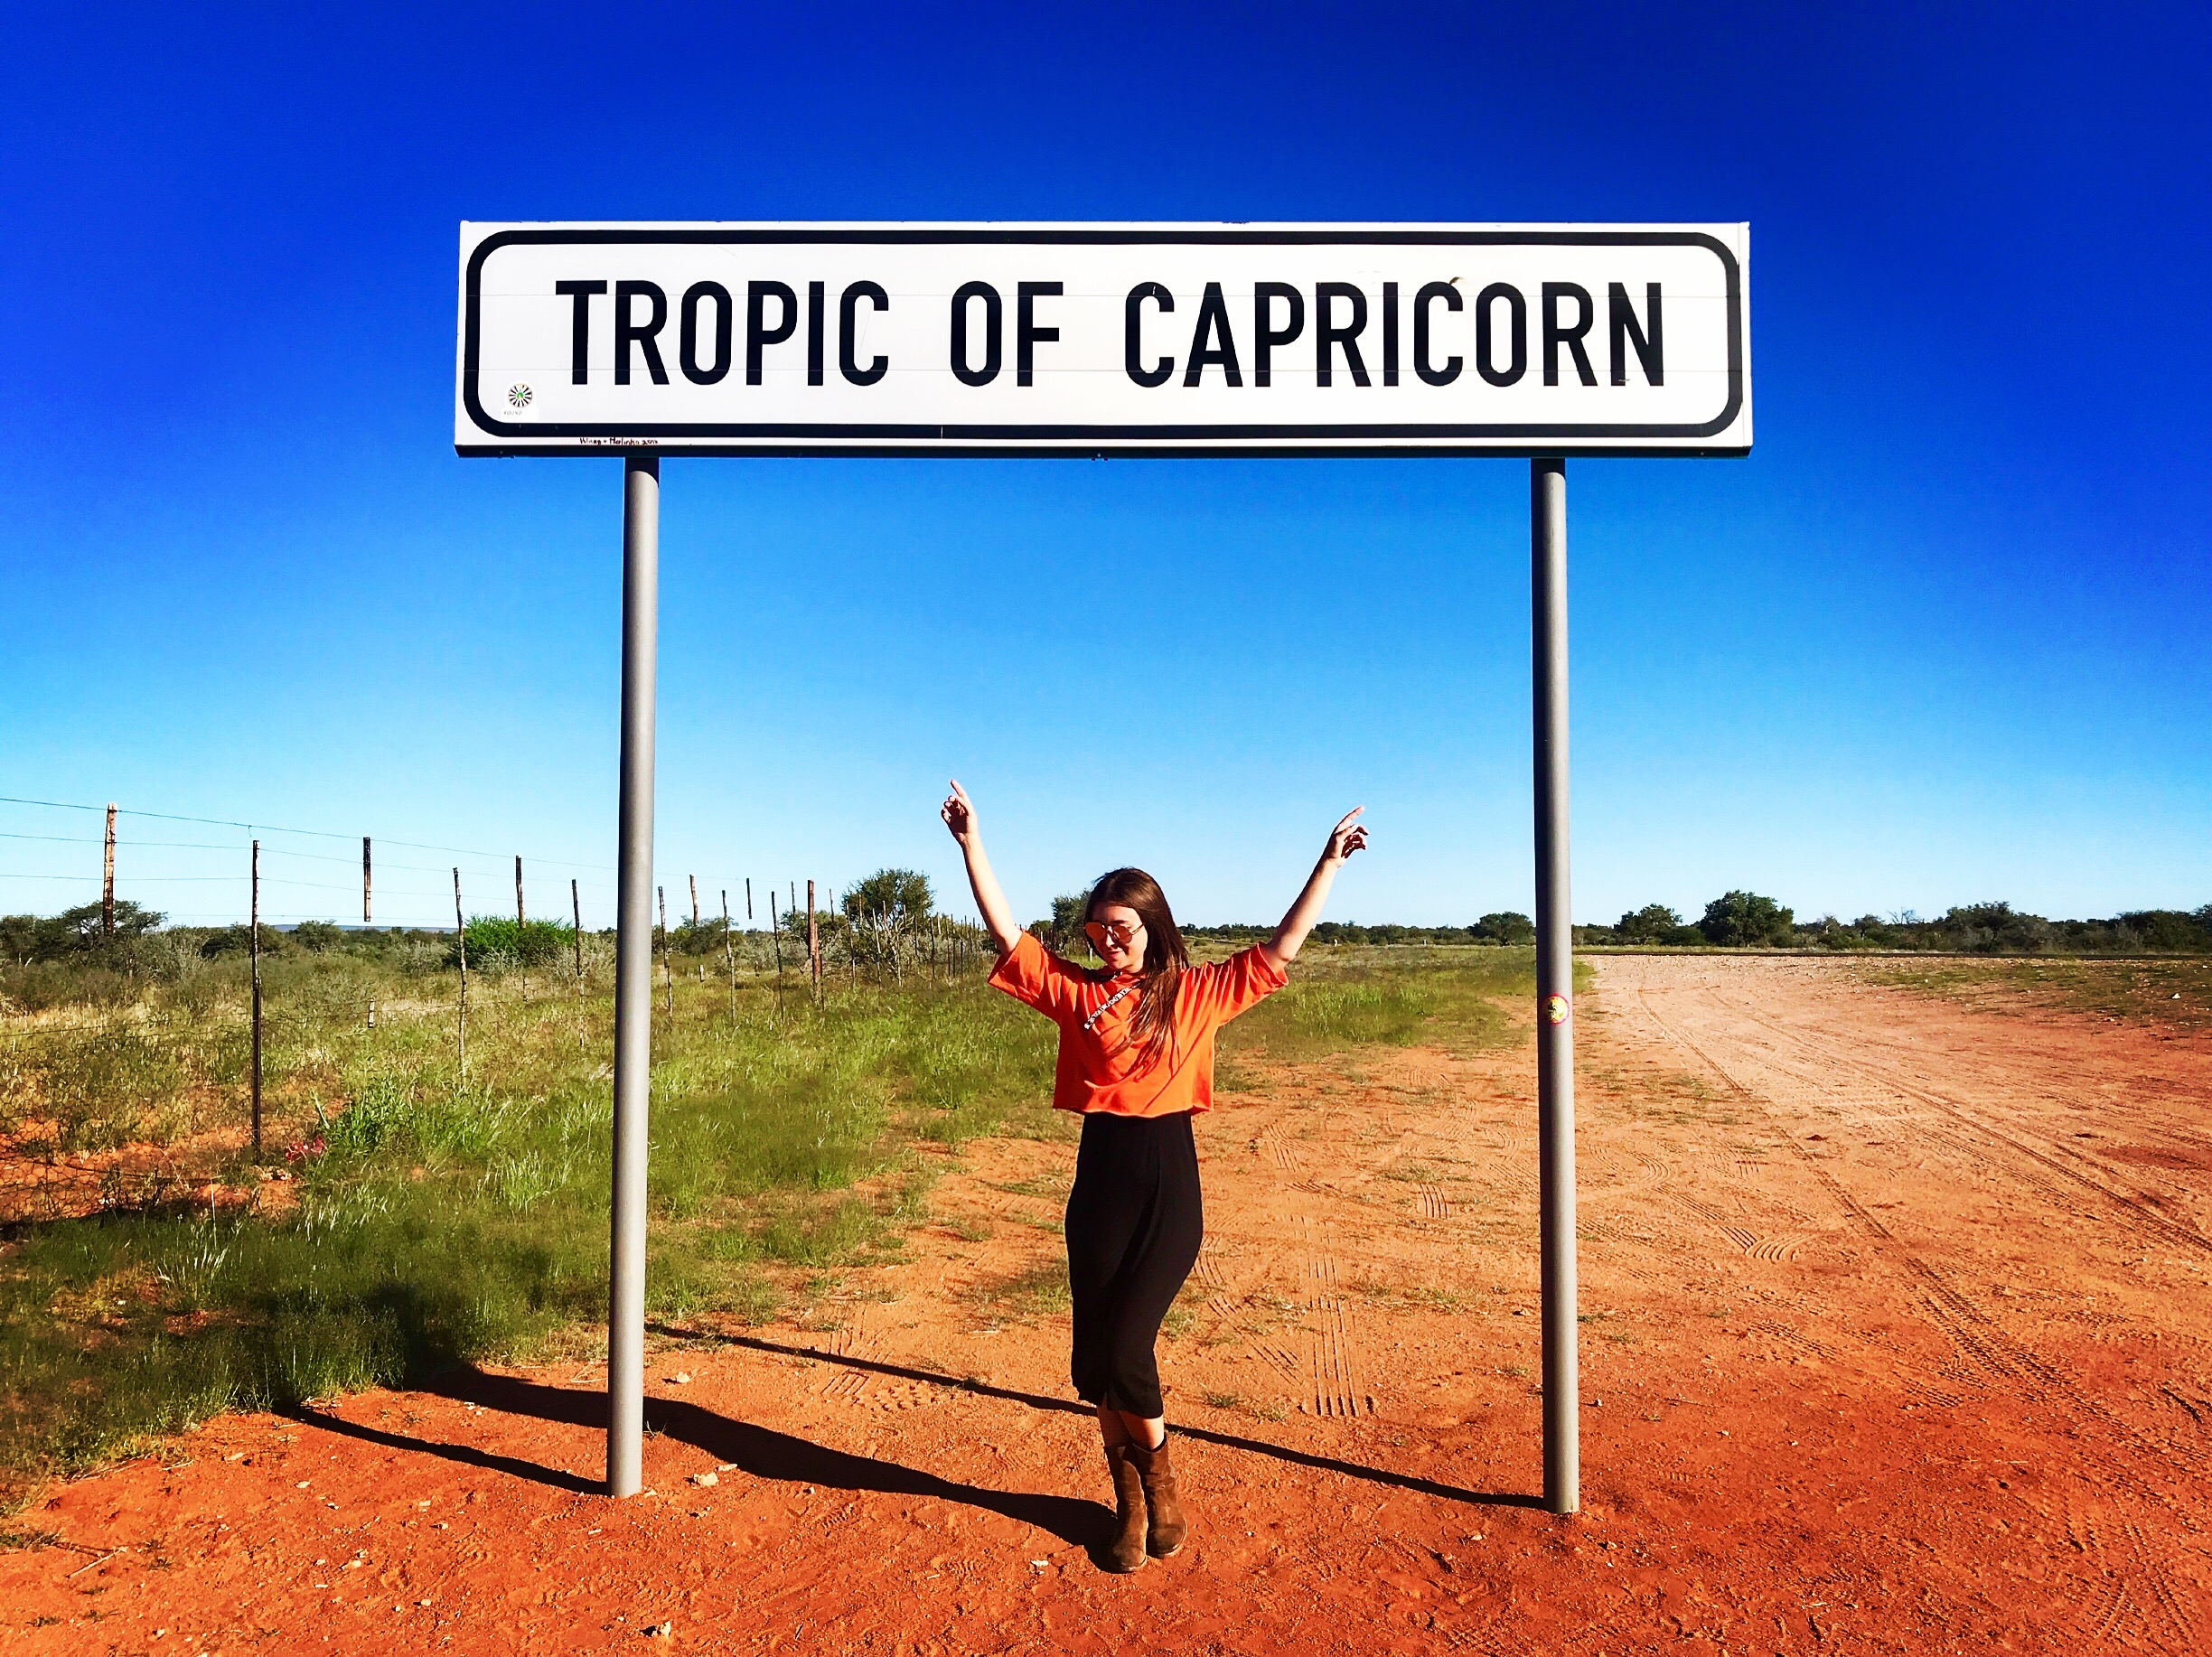 tropic-of-capricorn-namibia-lustforthesublime